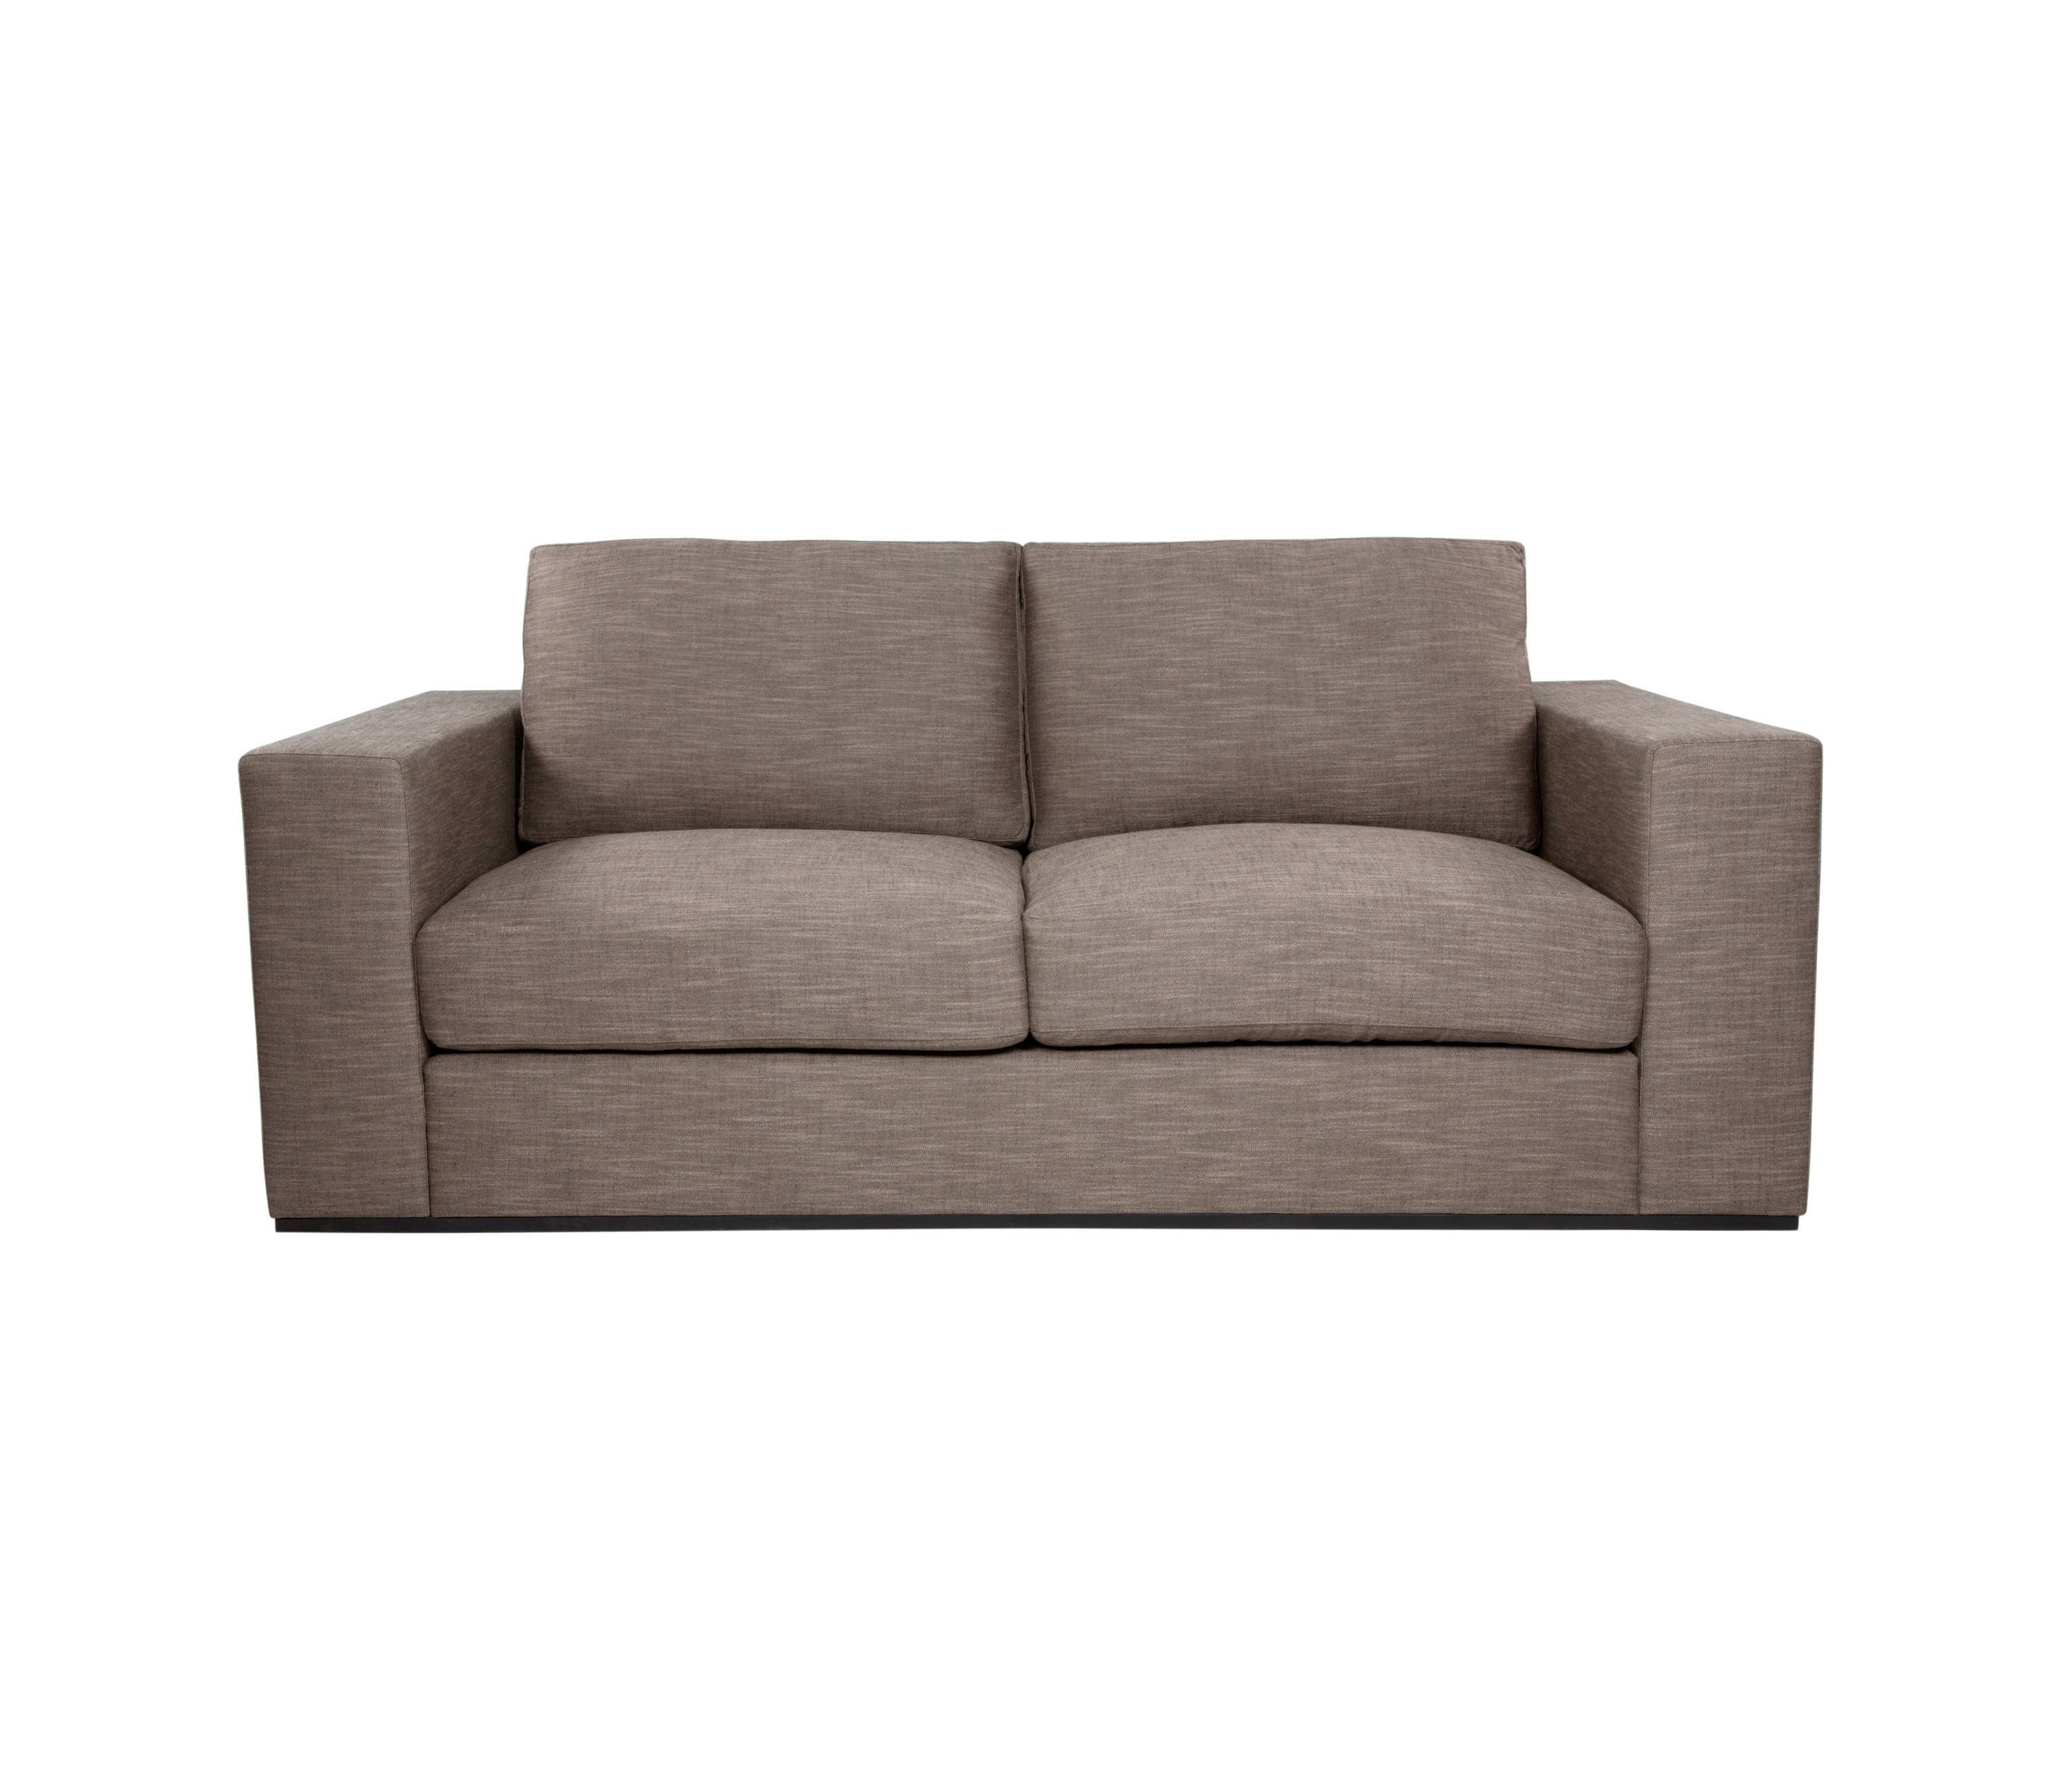 Braque Sofa - Lounge Sofas From The Sofa & Chair Company Ltd in Windsor Sofas (Image 1 of 30)